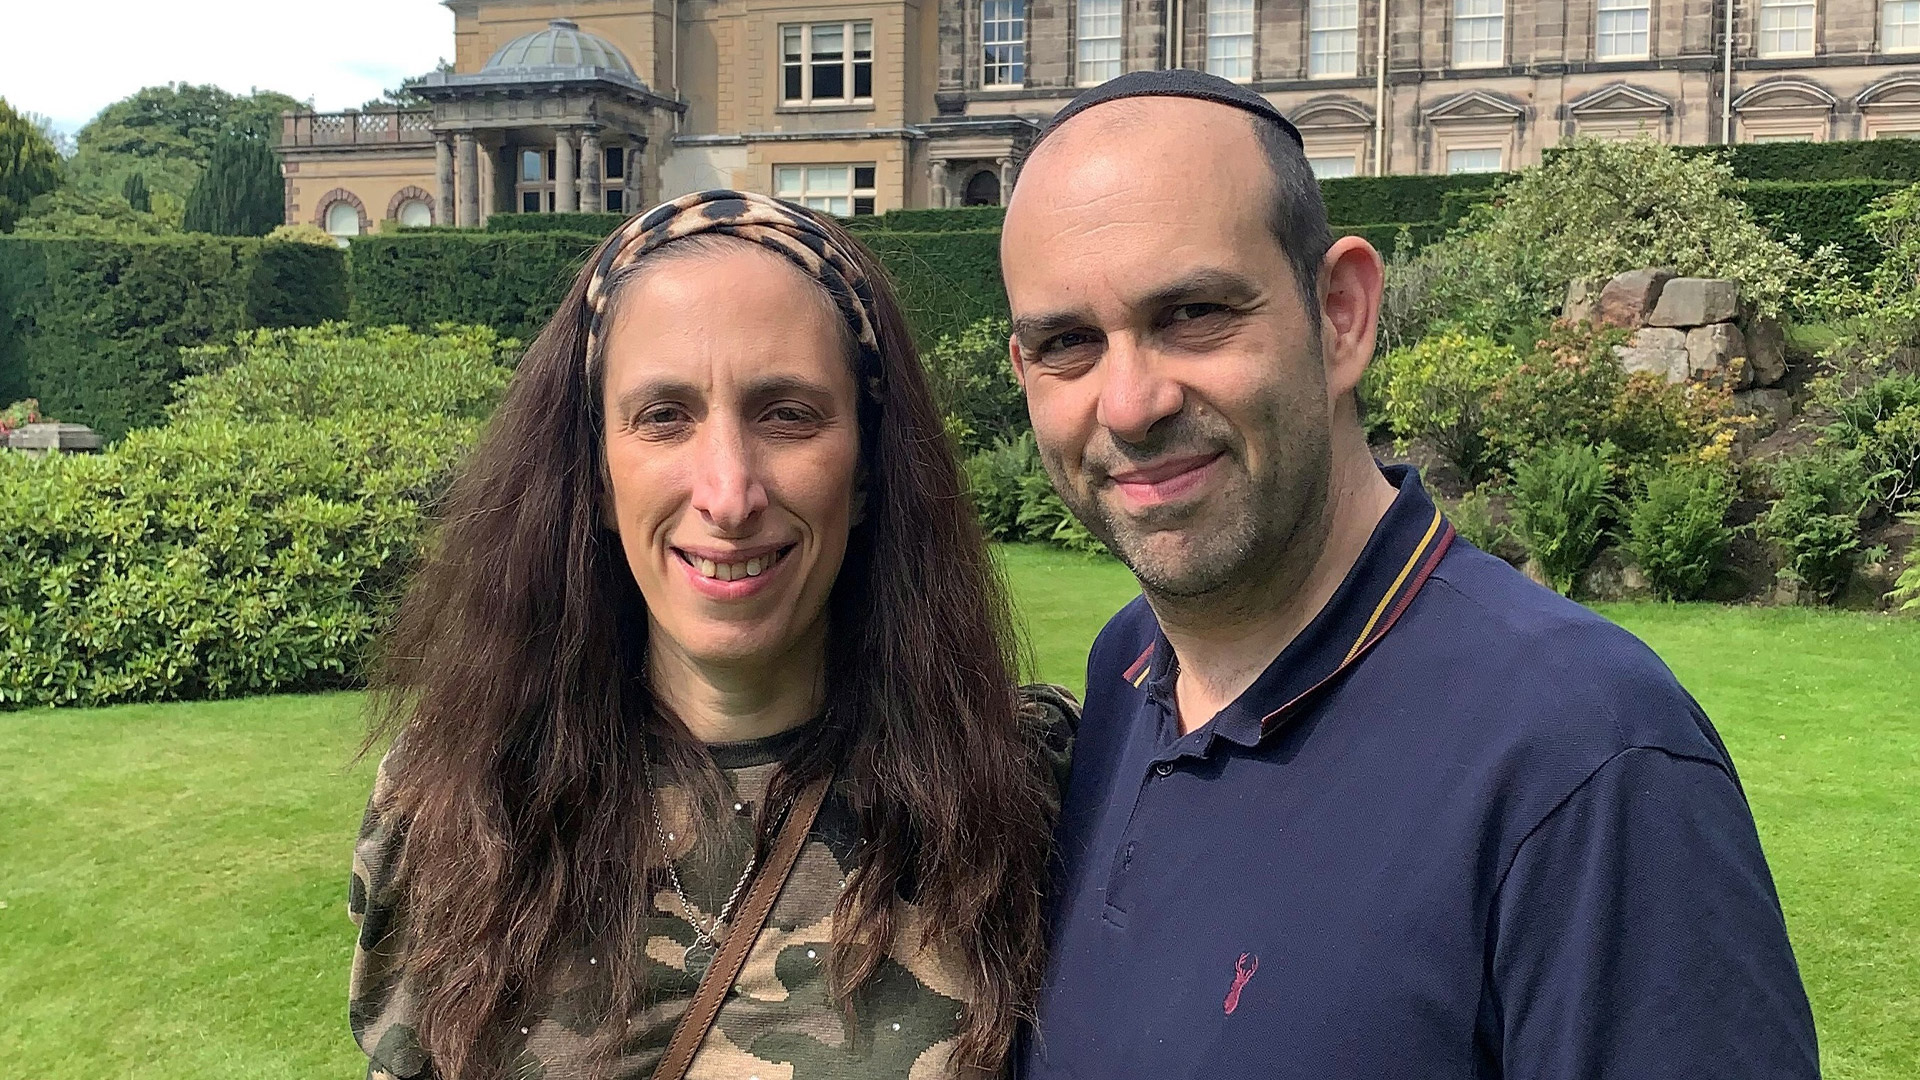 Jeffrey and his wife enjoying a day out at Biddulph Grange.